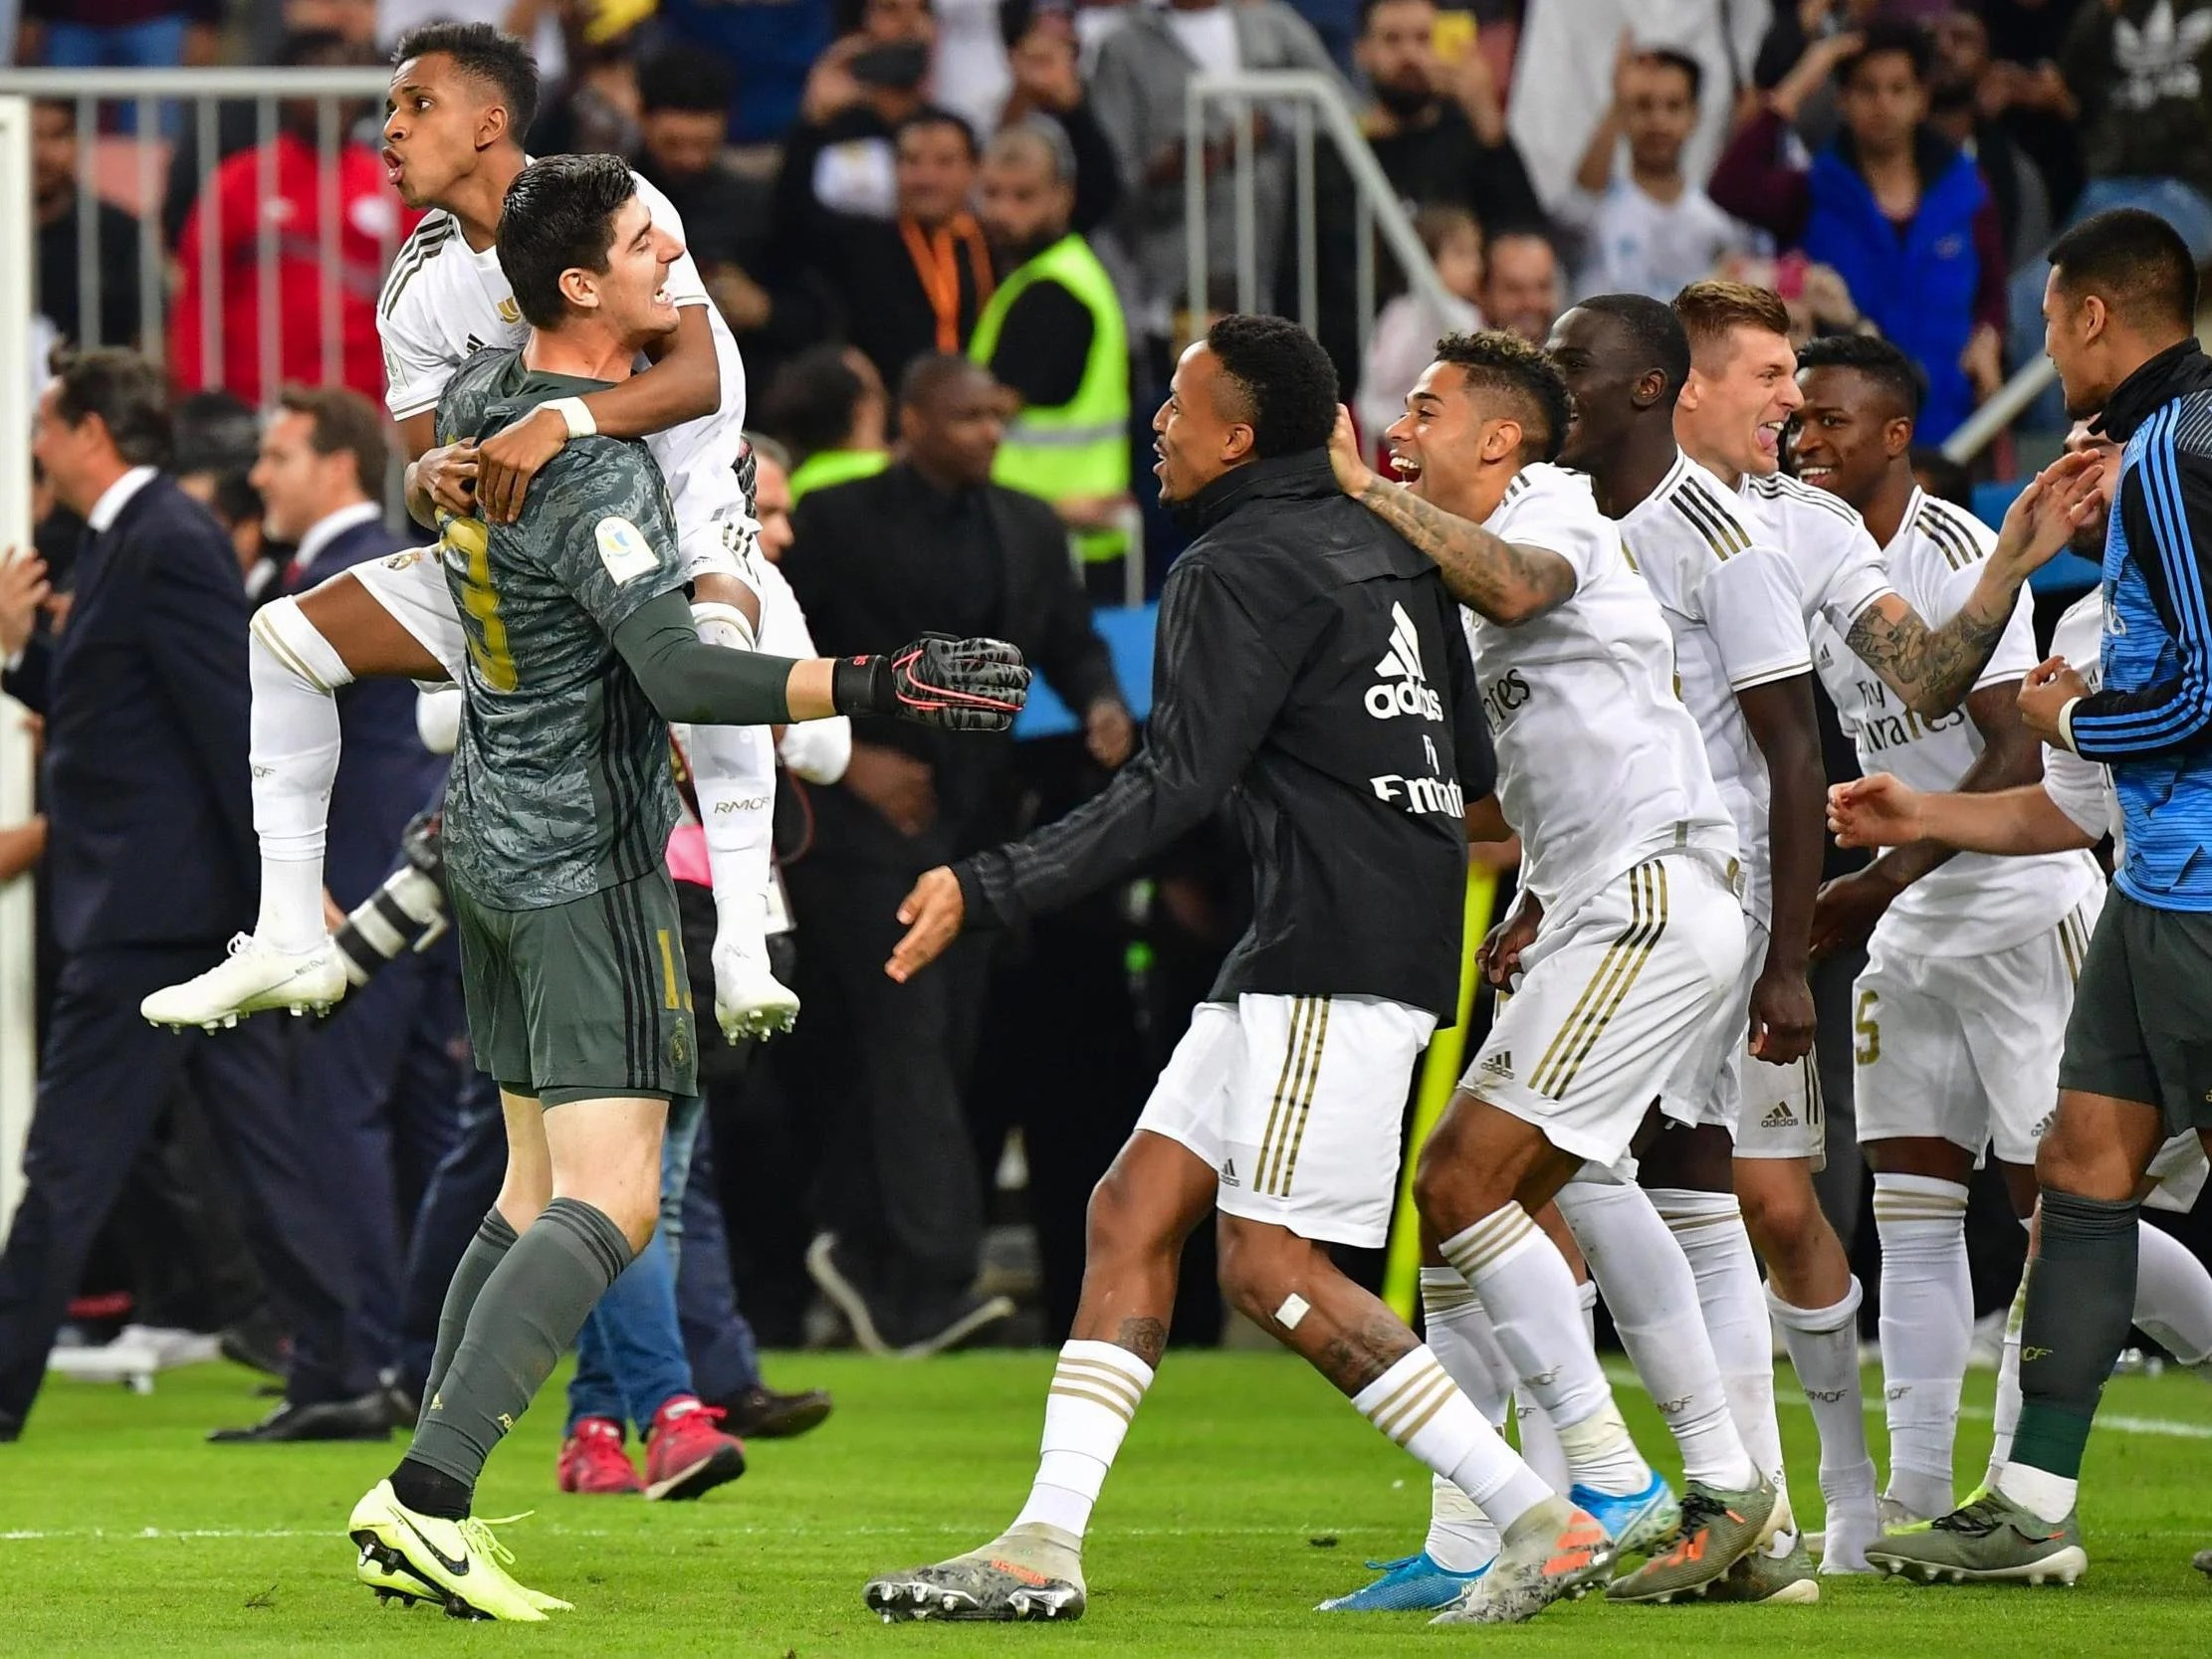 Real Madrid lift the Spanish Super Cup after beating Atletico on penalties